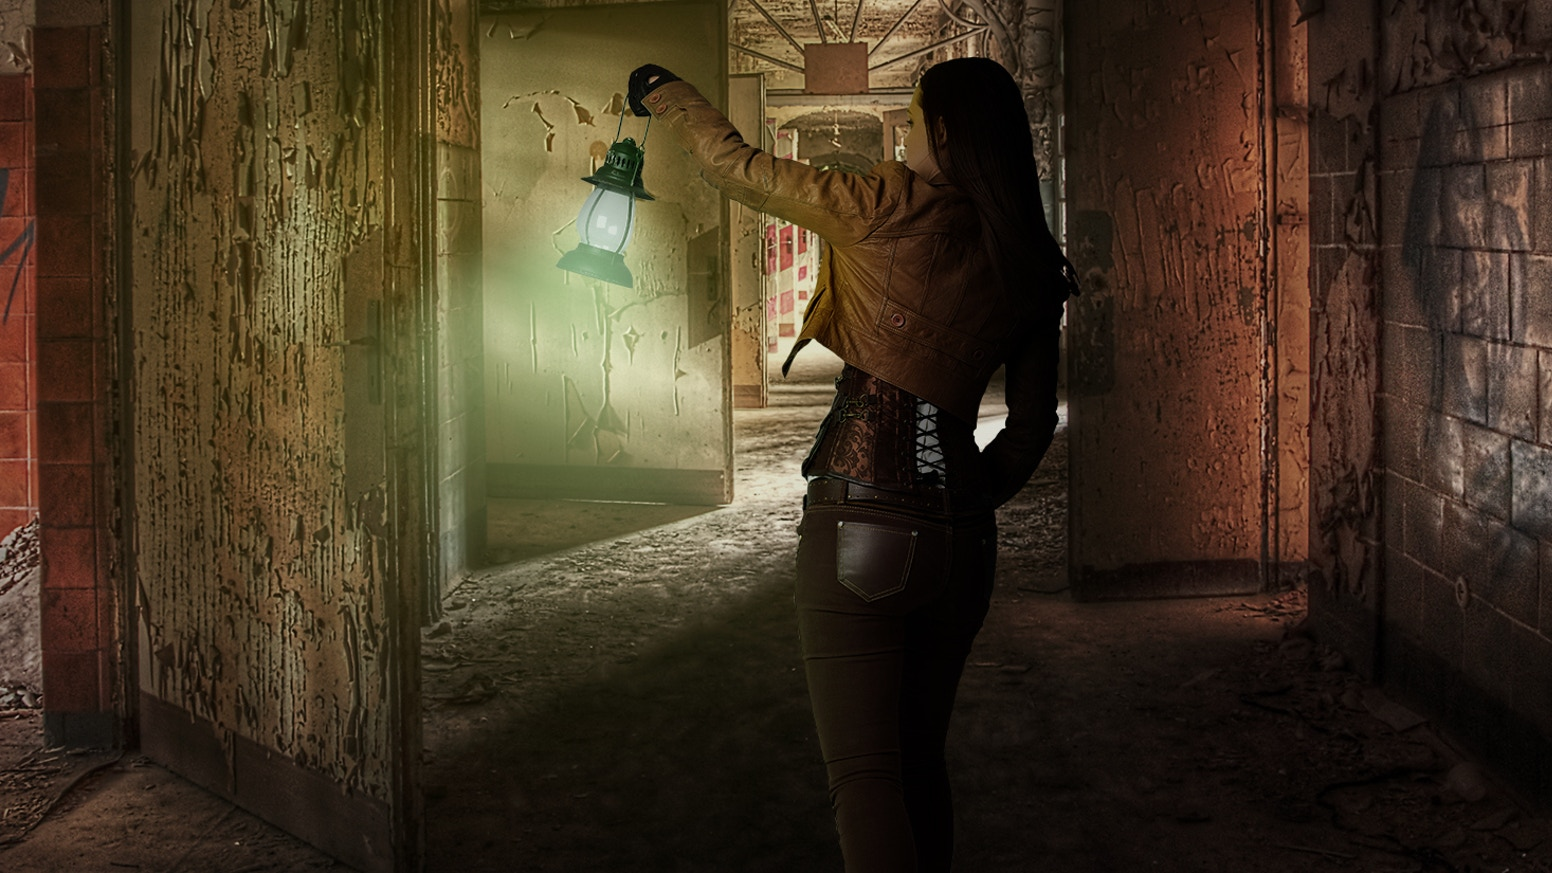 Two Steampunk novels from author Kristen Brand.